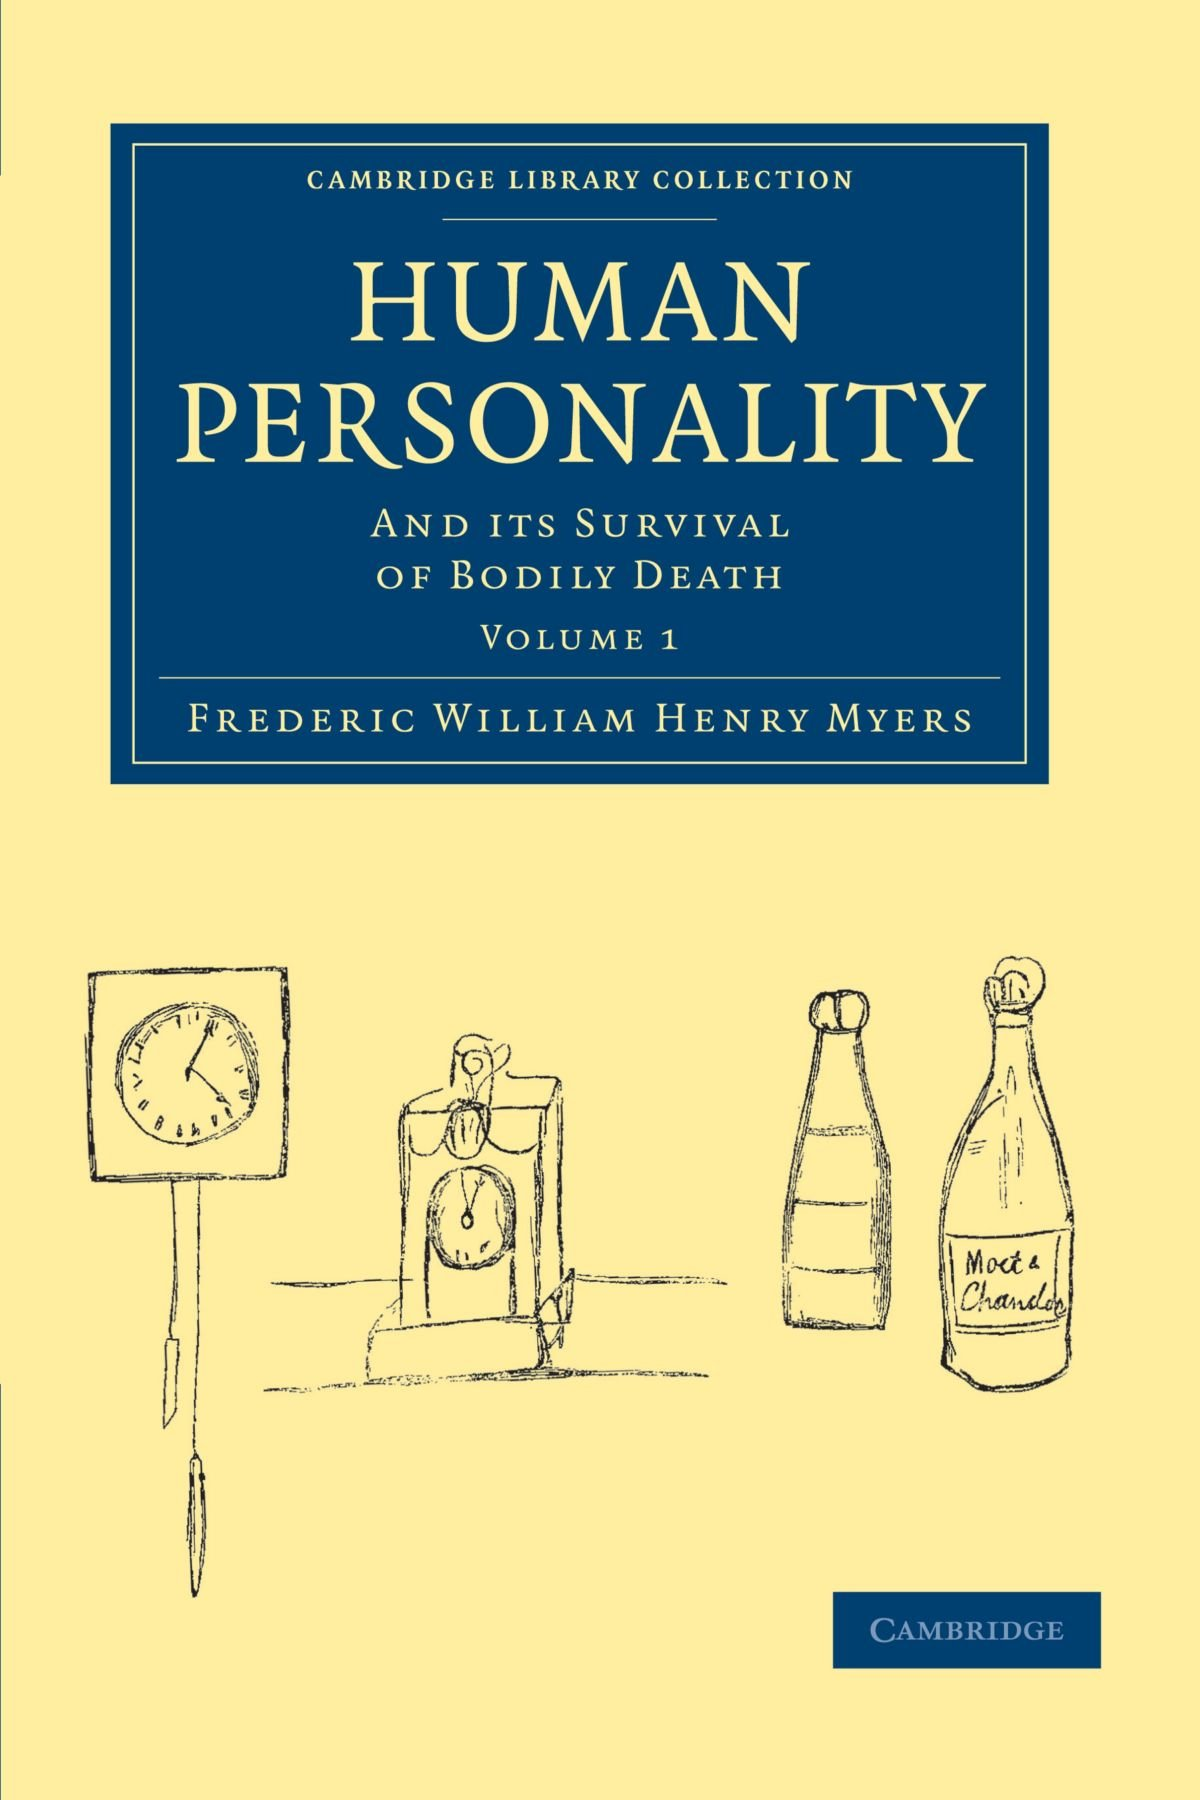 Human Personality: And its Survival of Bodily Death (Cambridge Library Collection - Spiritualism and Esoteric Knowledge) (Volume 1) by Brand: Cambridge University Press